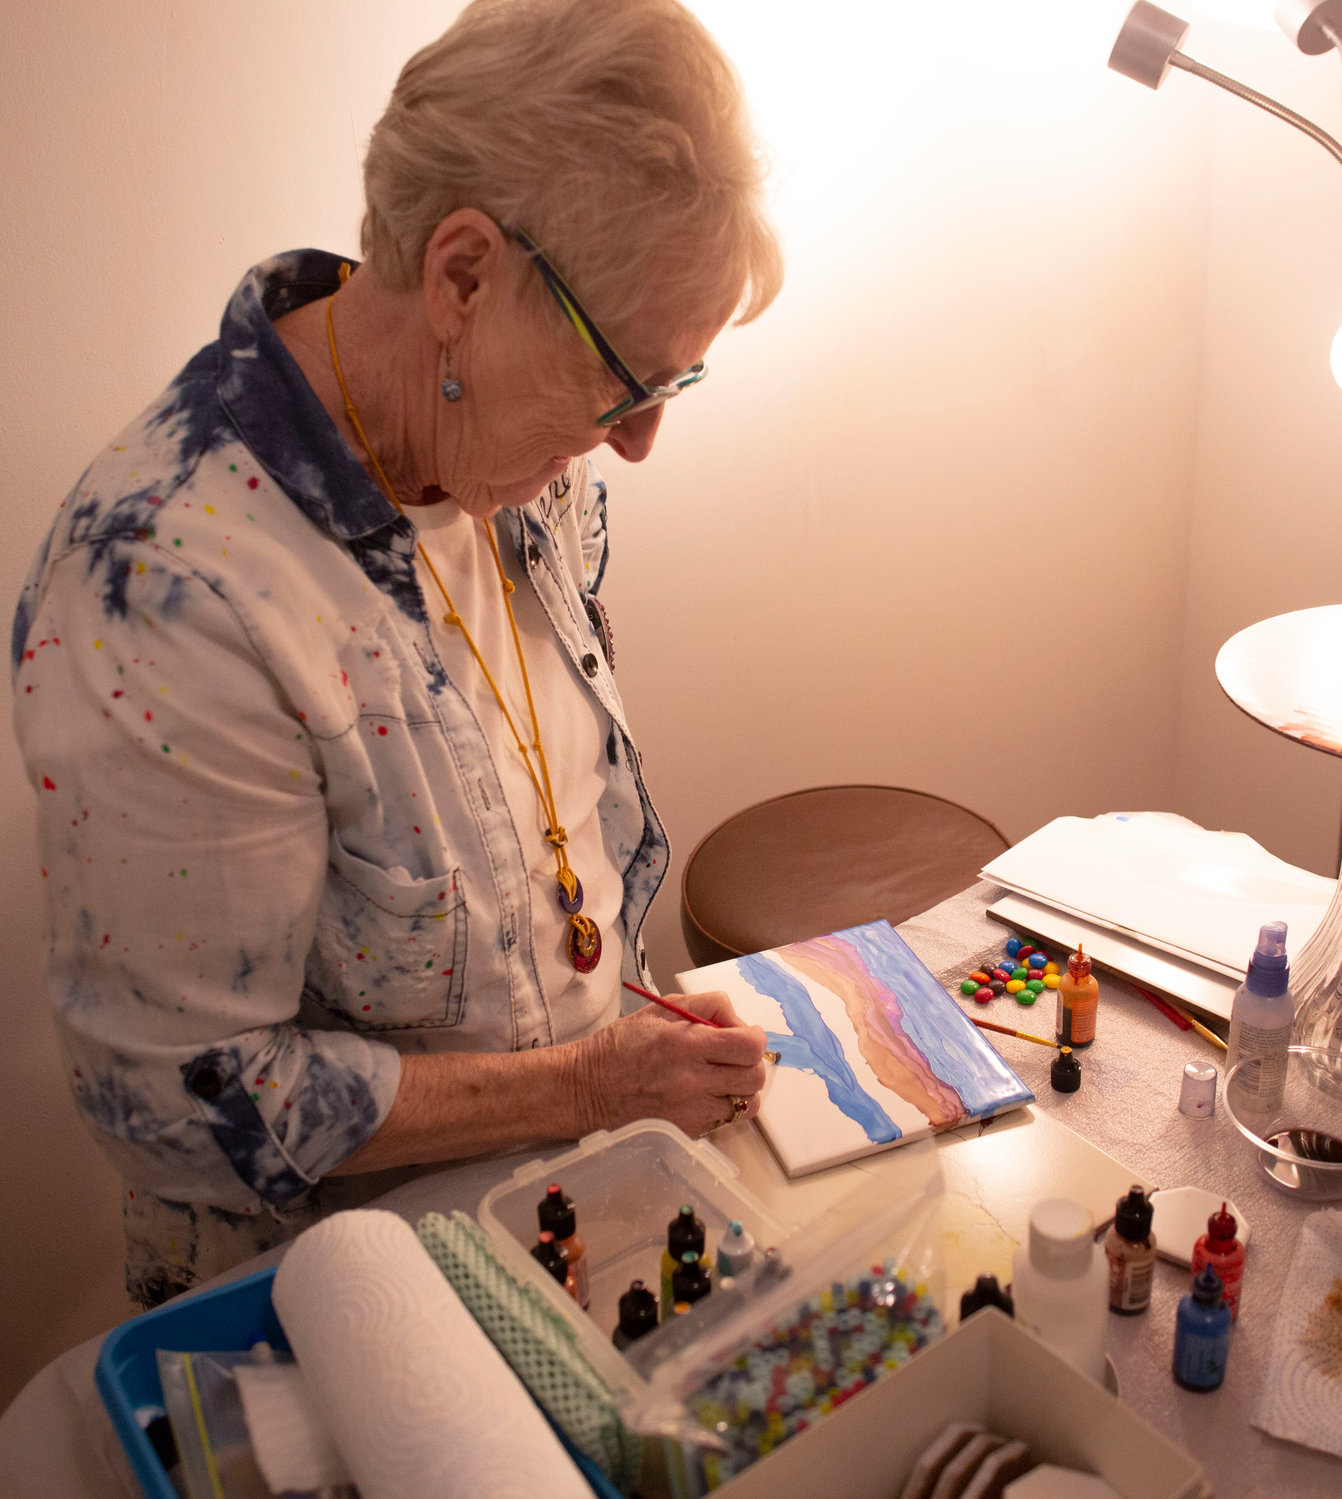 Helene Murray giving a demonstration of the alcohol-ink art, where she paints with inks and sprays alcohol to great texture and patterns on titles.